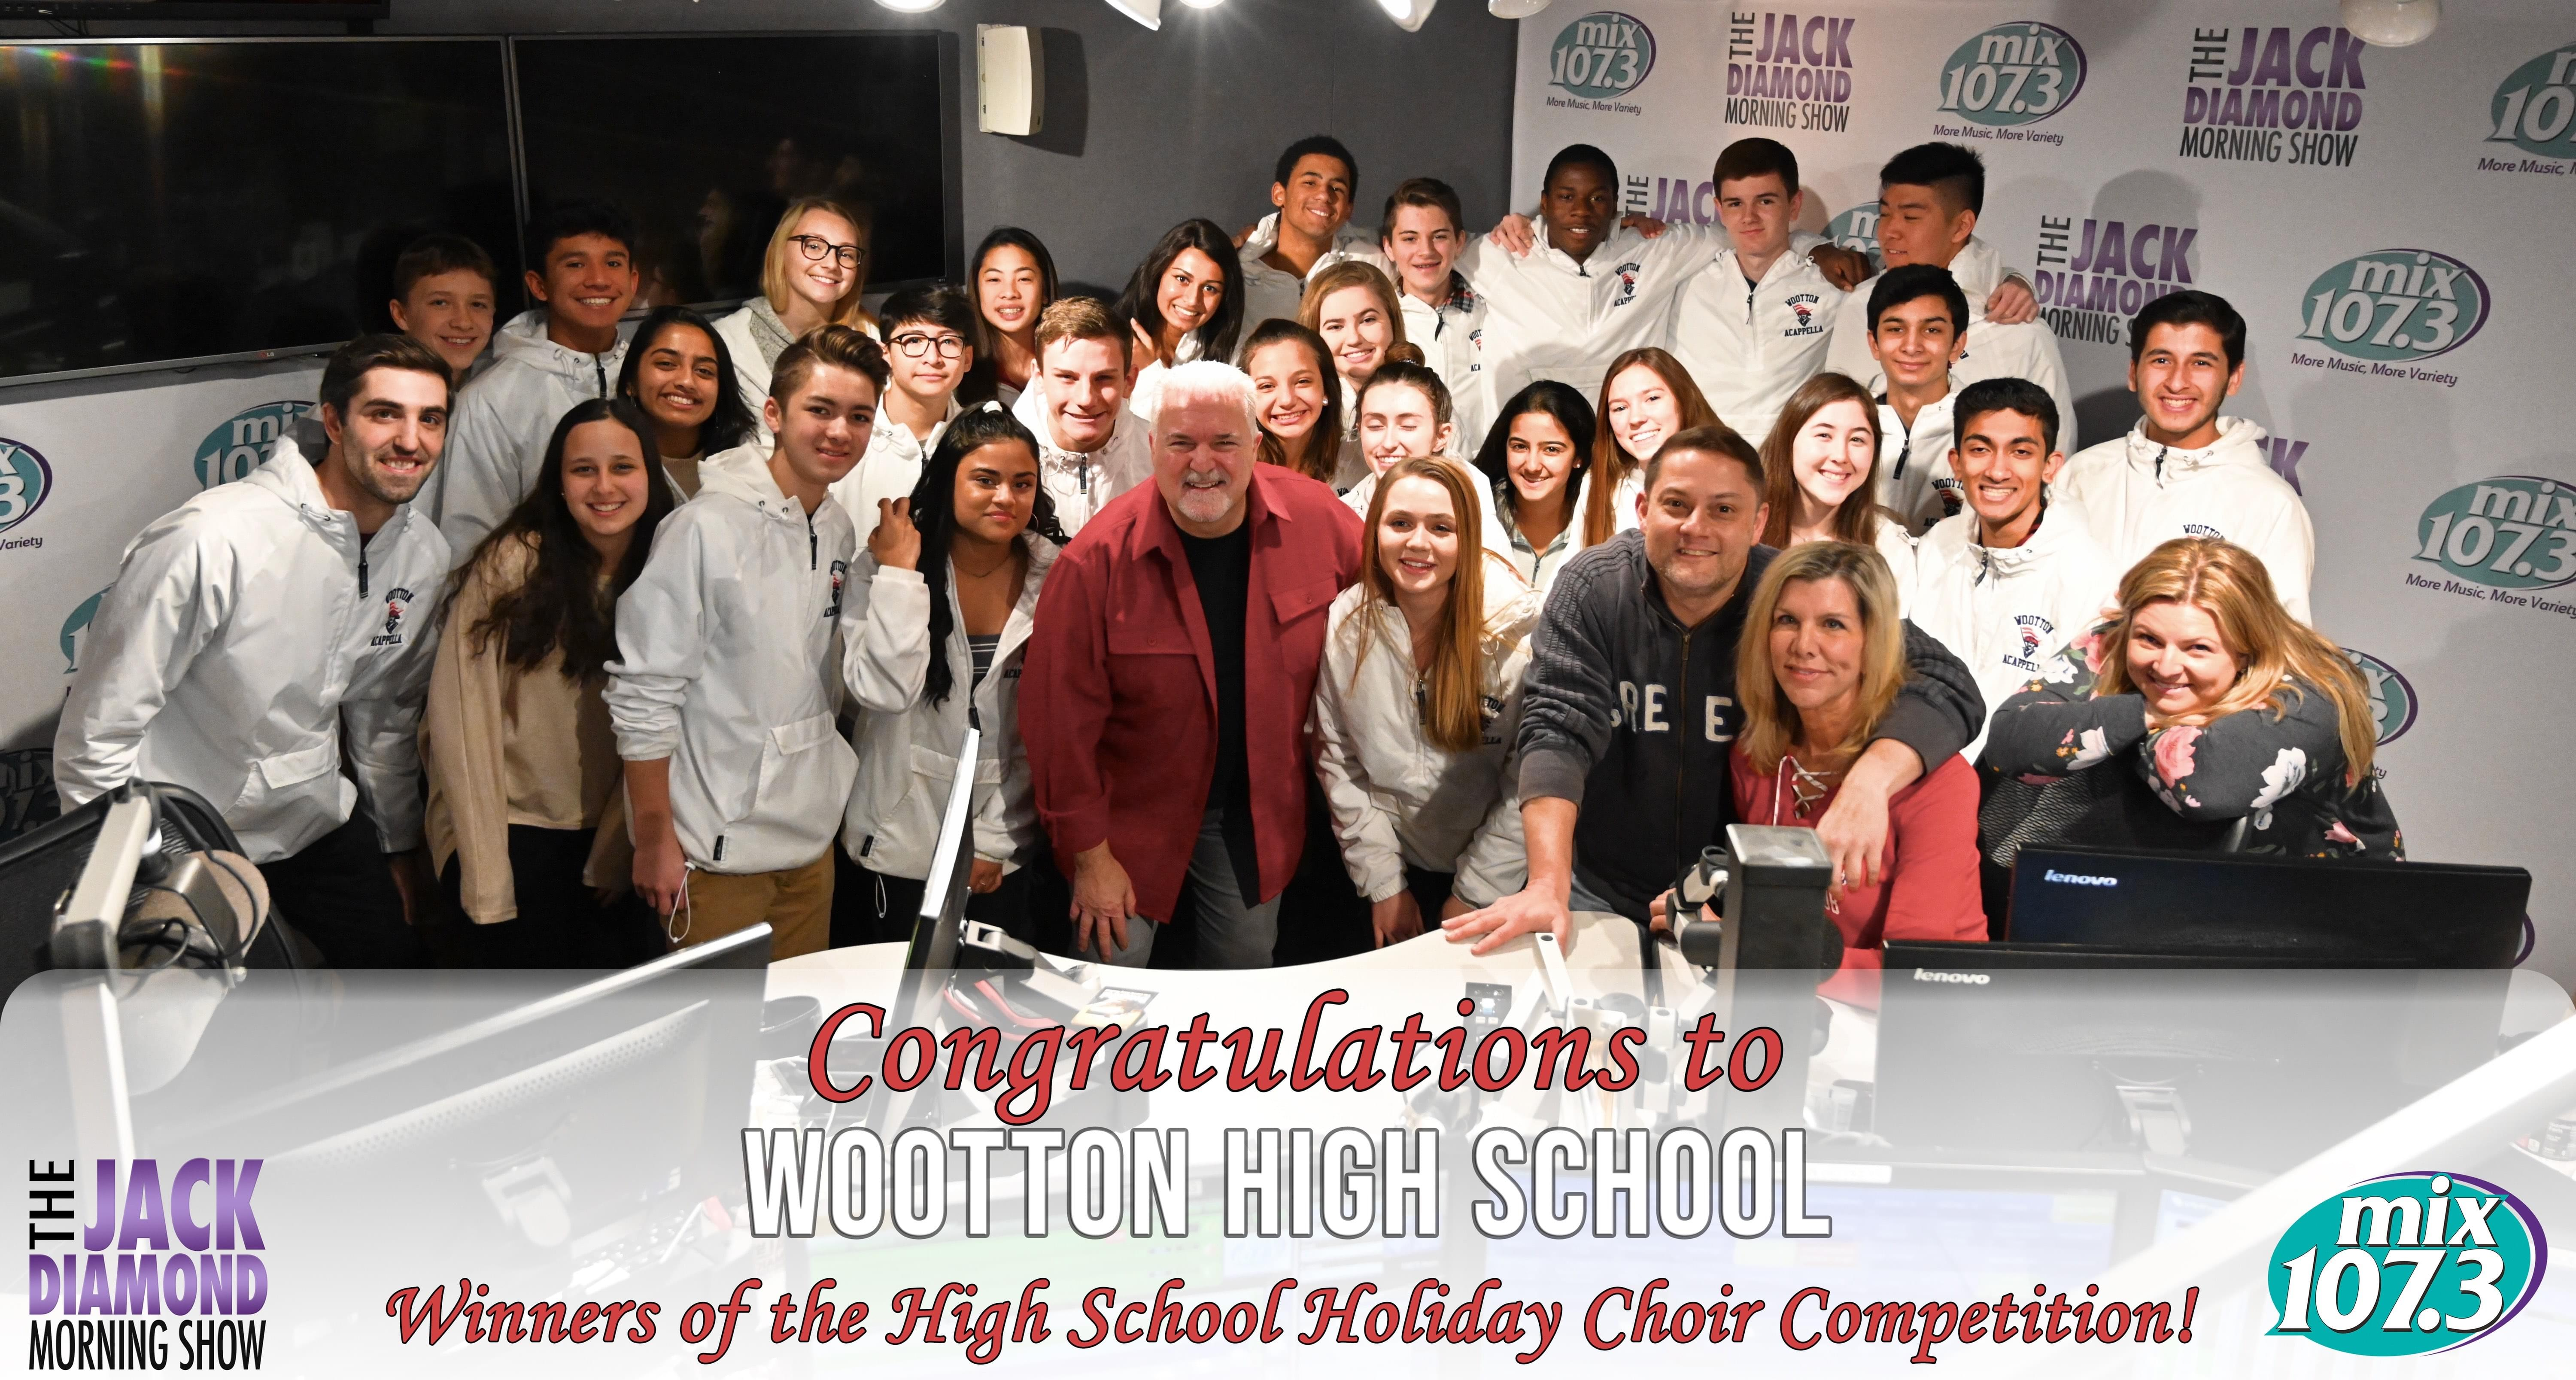 The Jack Diamond Morning Show 2018 Holiday Choir High School Winners – The Wootton High School Choir – Achatonics!